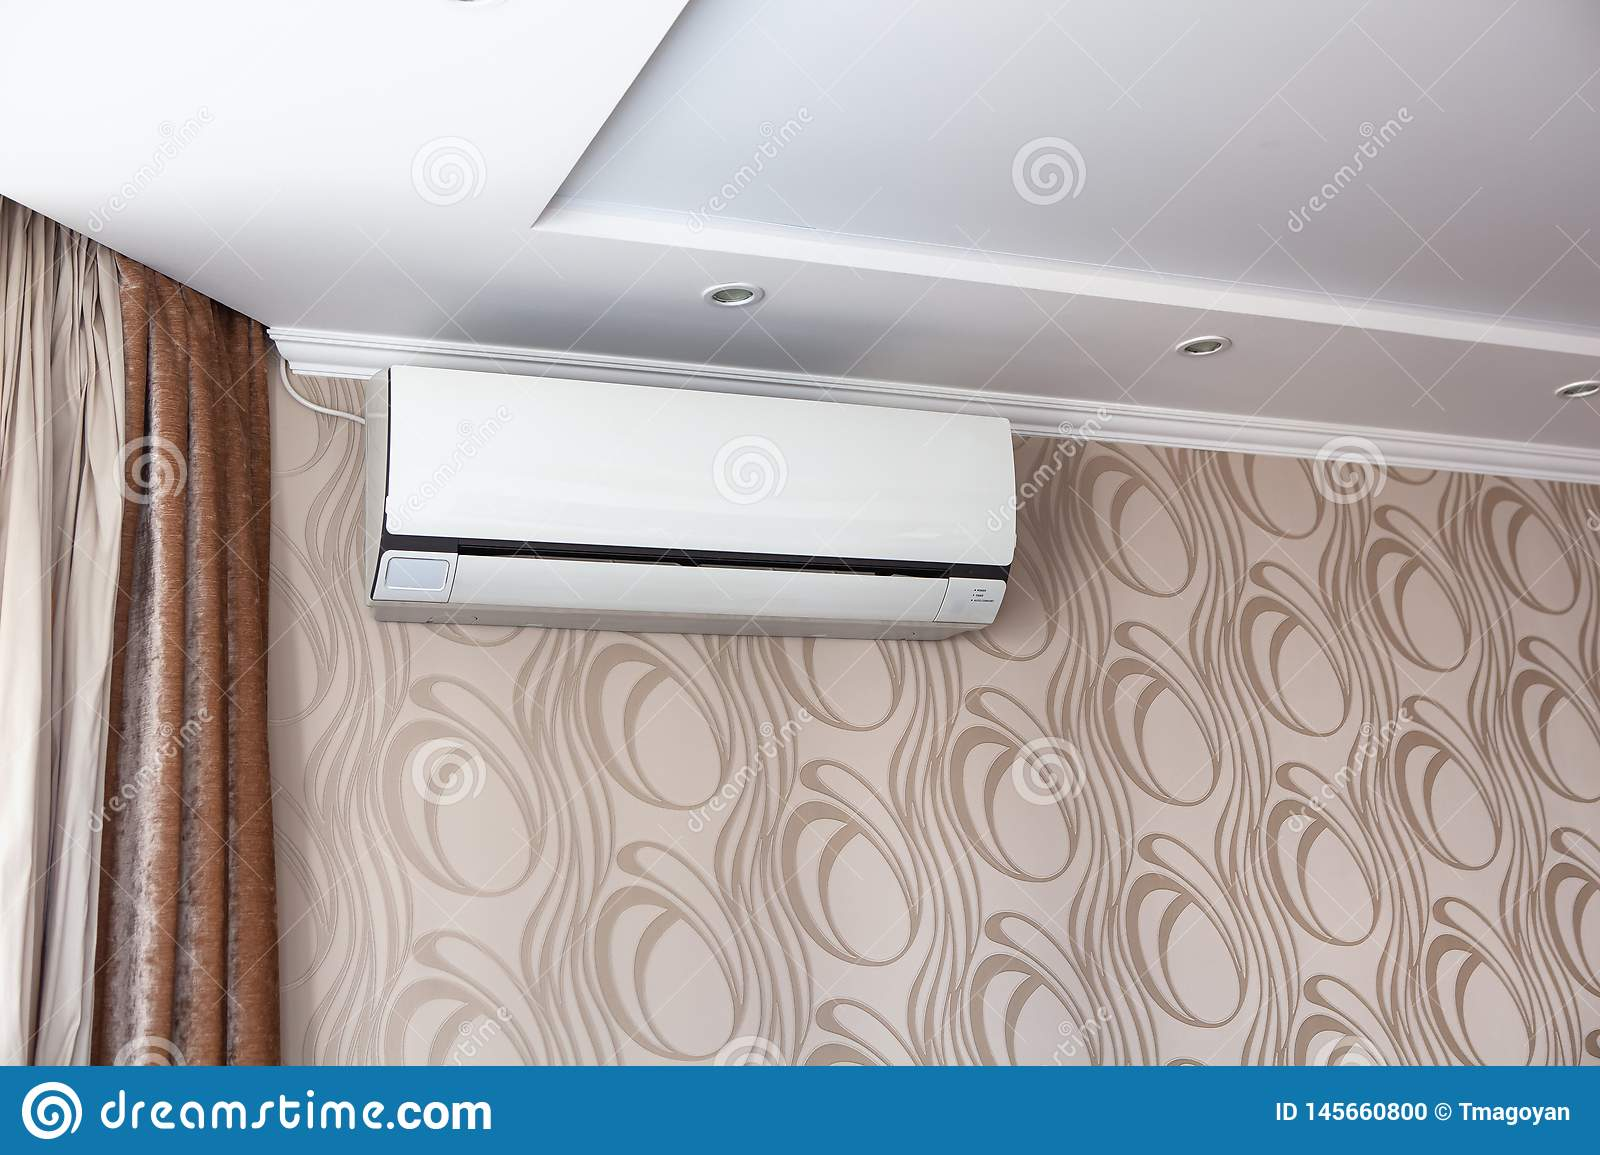 Air conditioning on the wall inside the room in apartment, switched off. Interior in calm beige tones